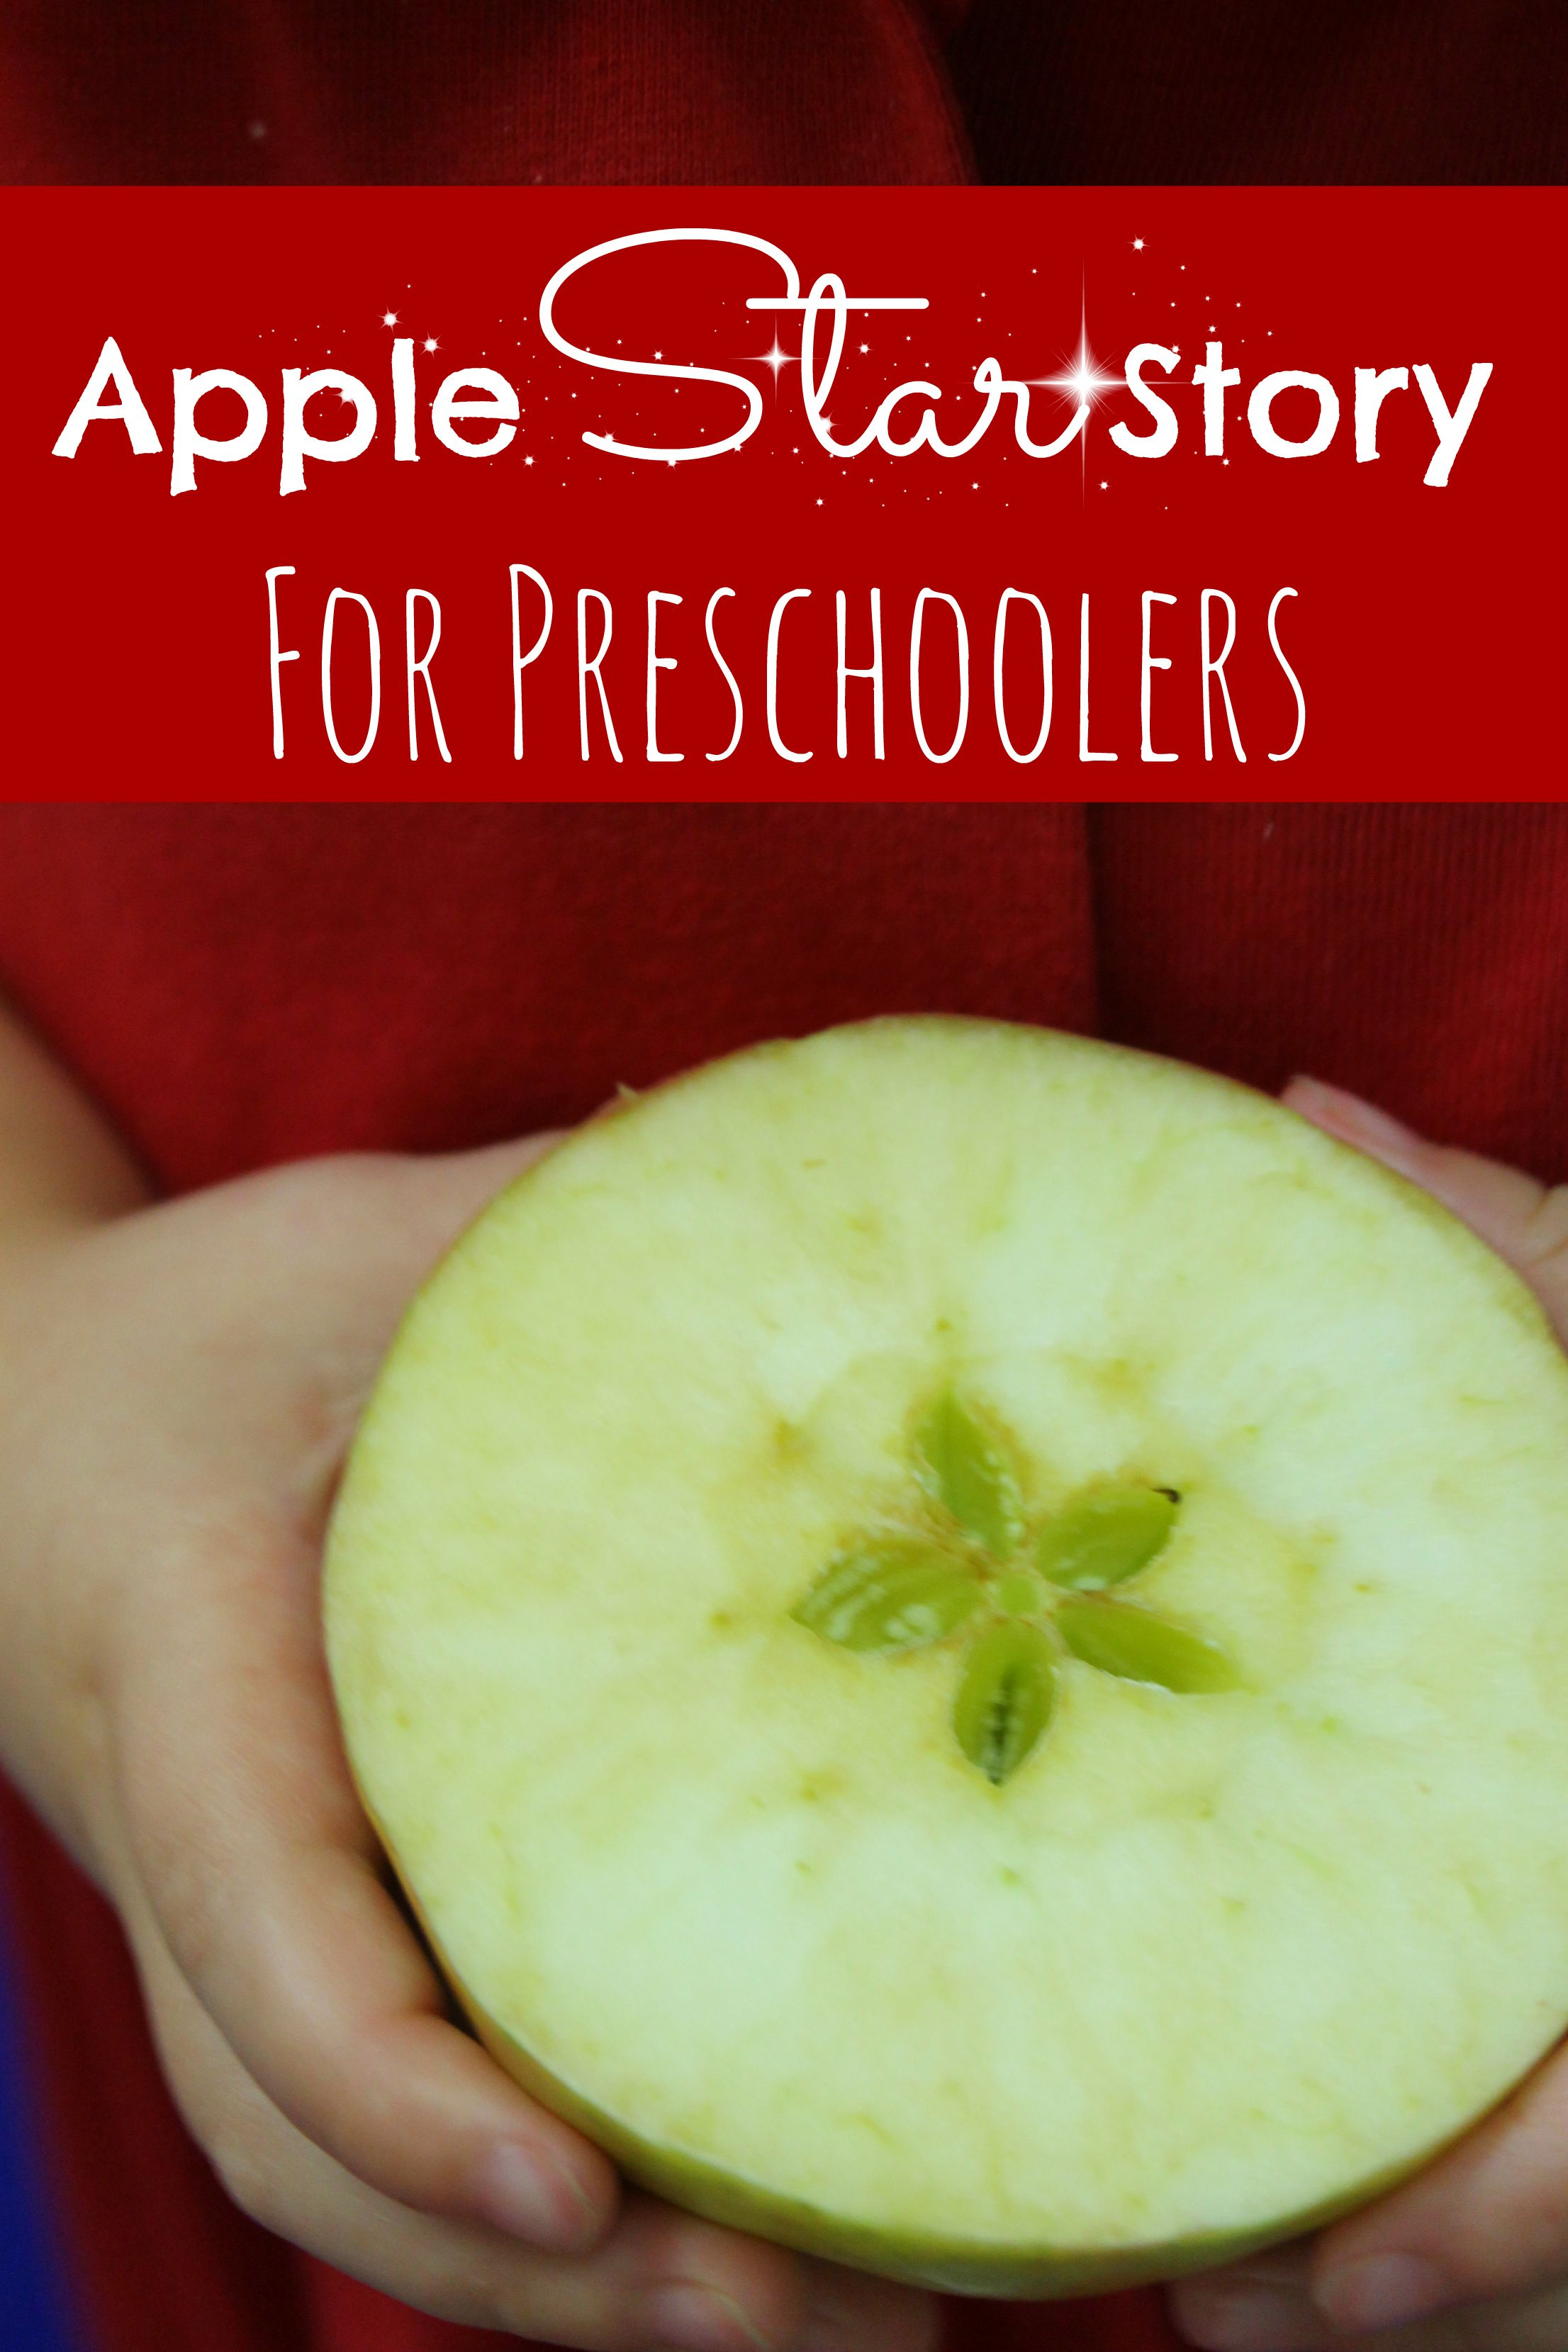 Apple Star Story For Preschoolers